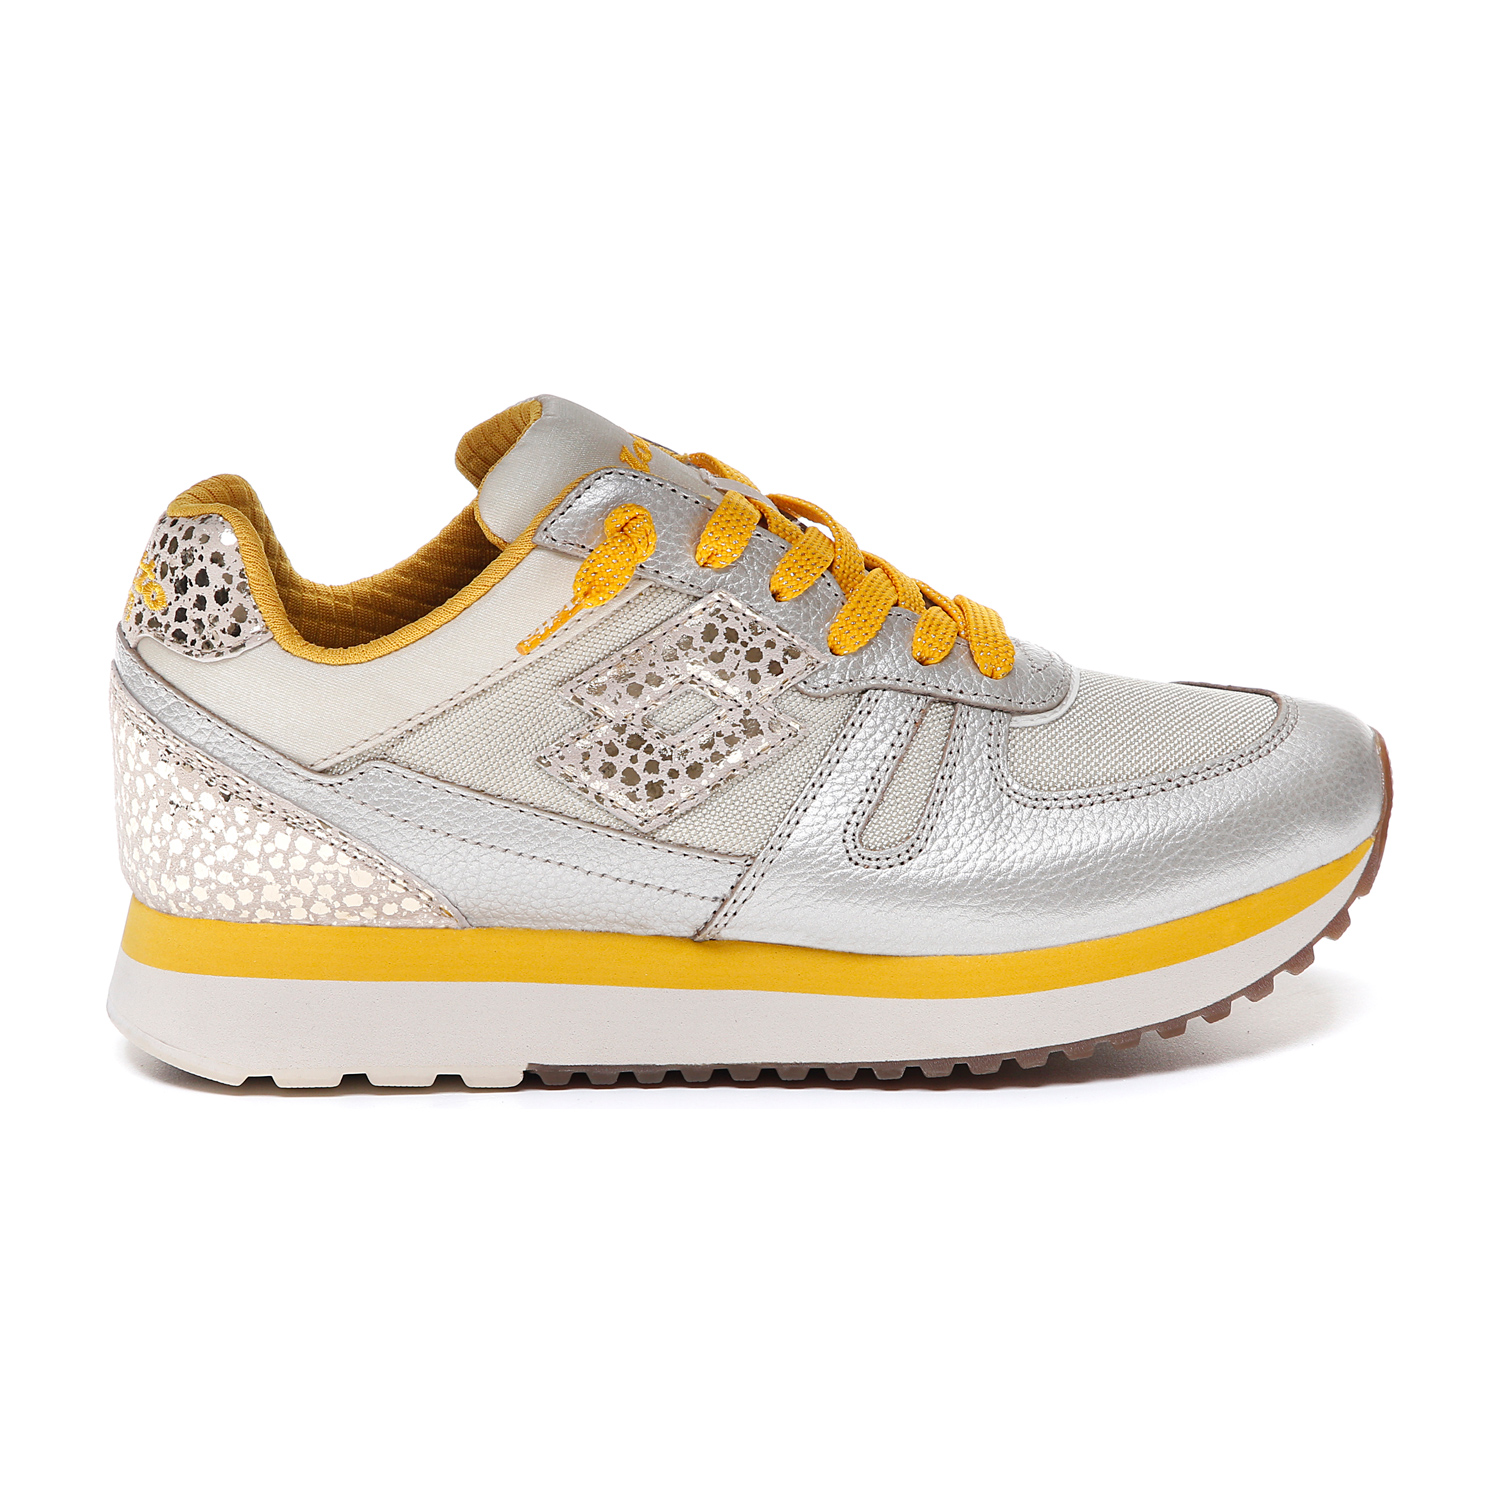 979befeebb32b1 Lotto Sport Italia - Footwear, clothing and accessories for sport ...